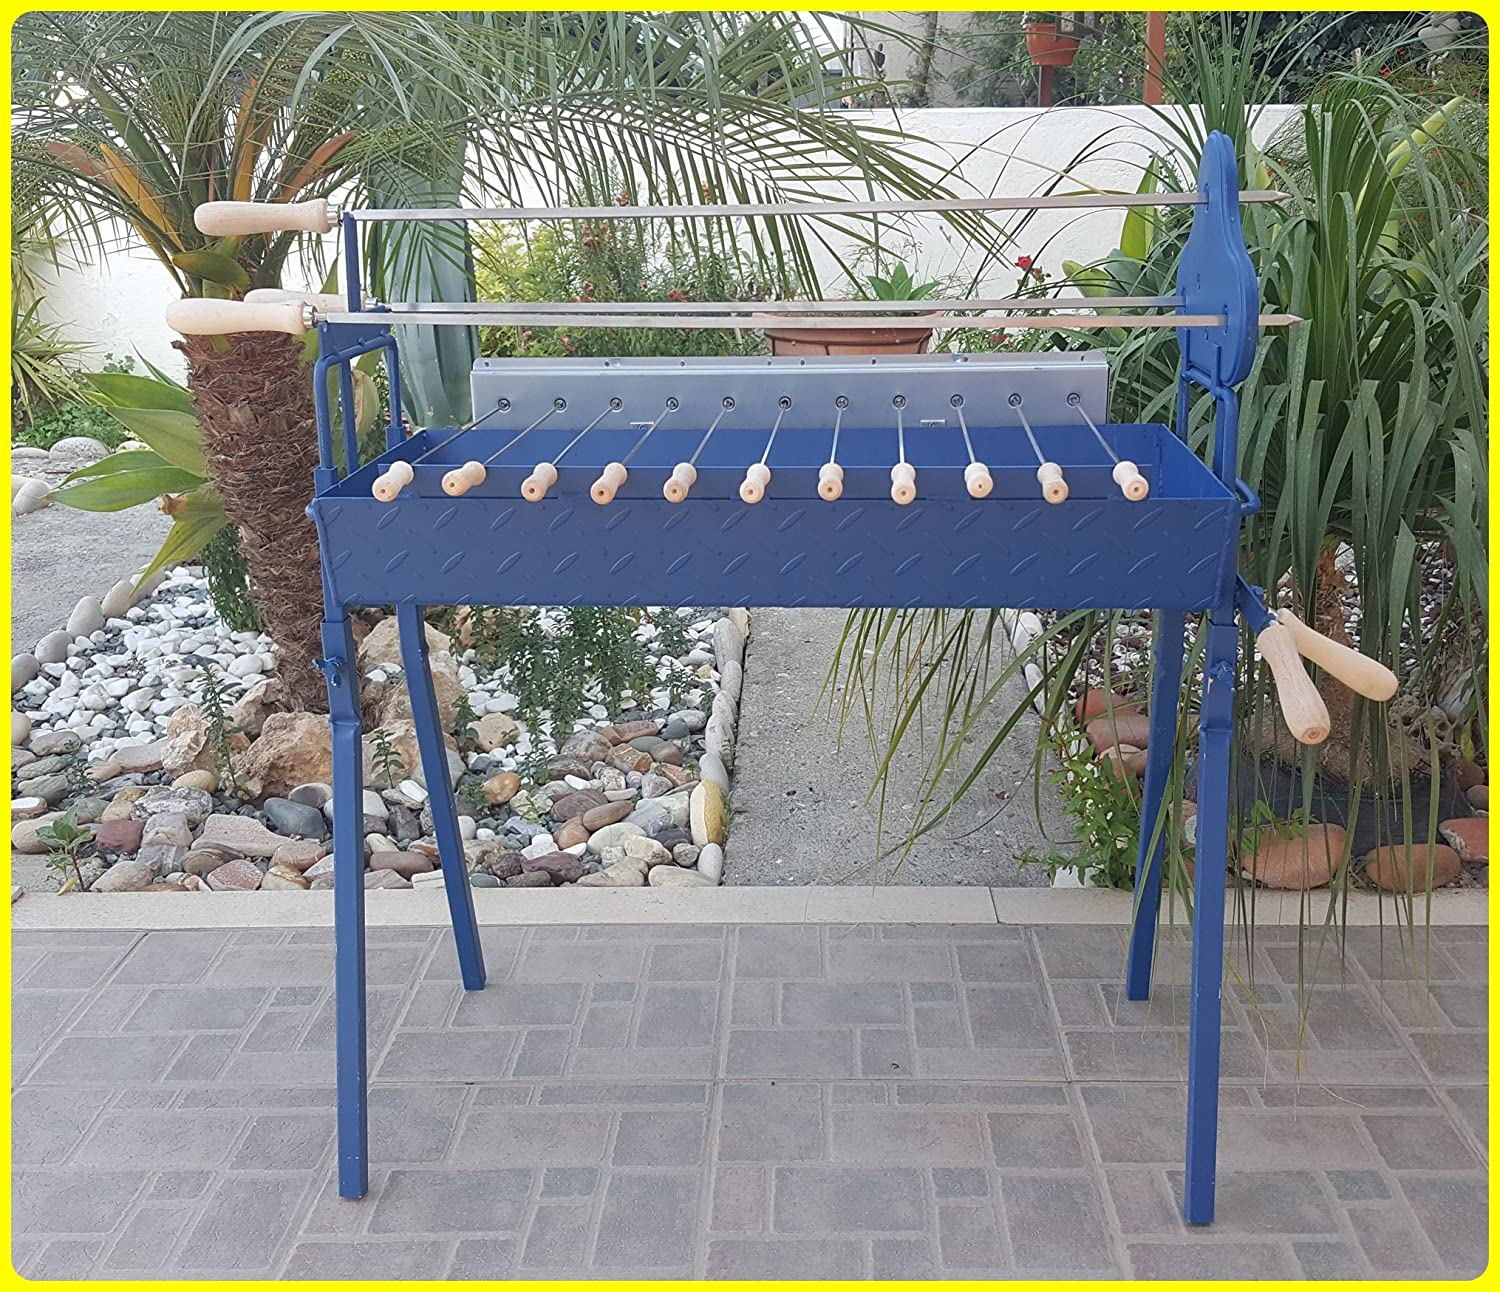 Korakas Foukou Large Foukou BBQ Traditional Greek Cypriot for Charcoal Rotisserie Barbecue Blue Color + Pair of Chicken Hooks + Motor Grill operated by both Battery & AC/DC